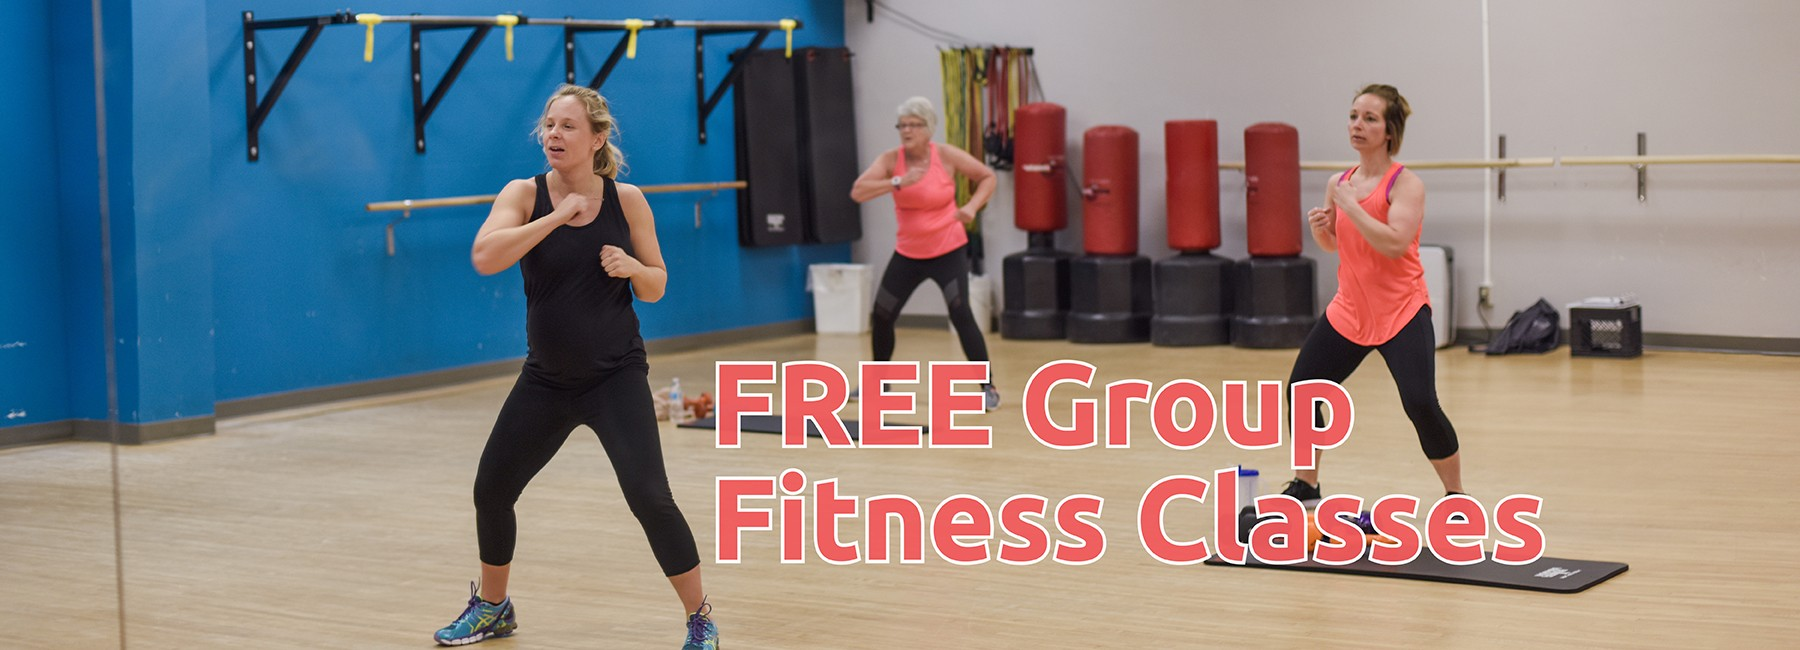 FREE Group Fitness Classes.jpg